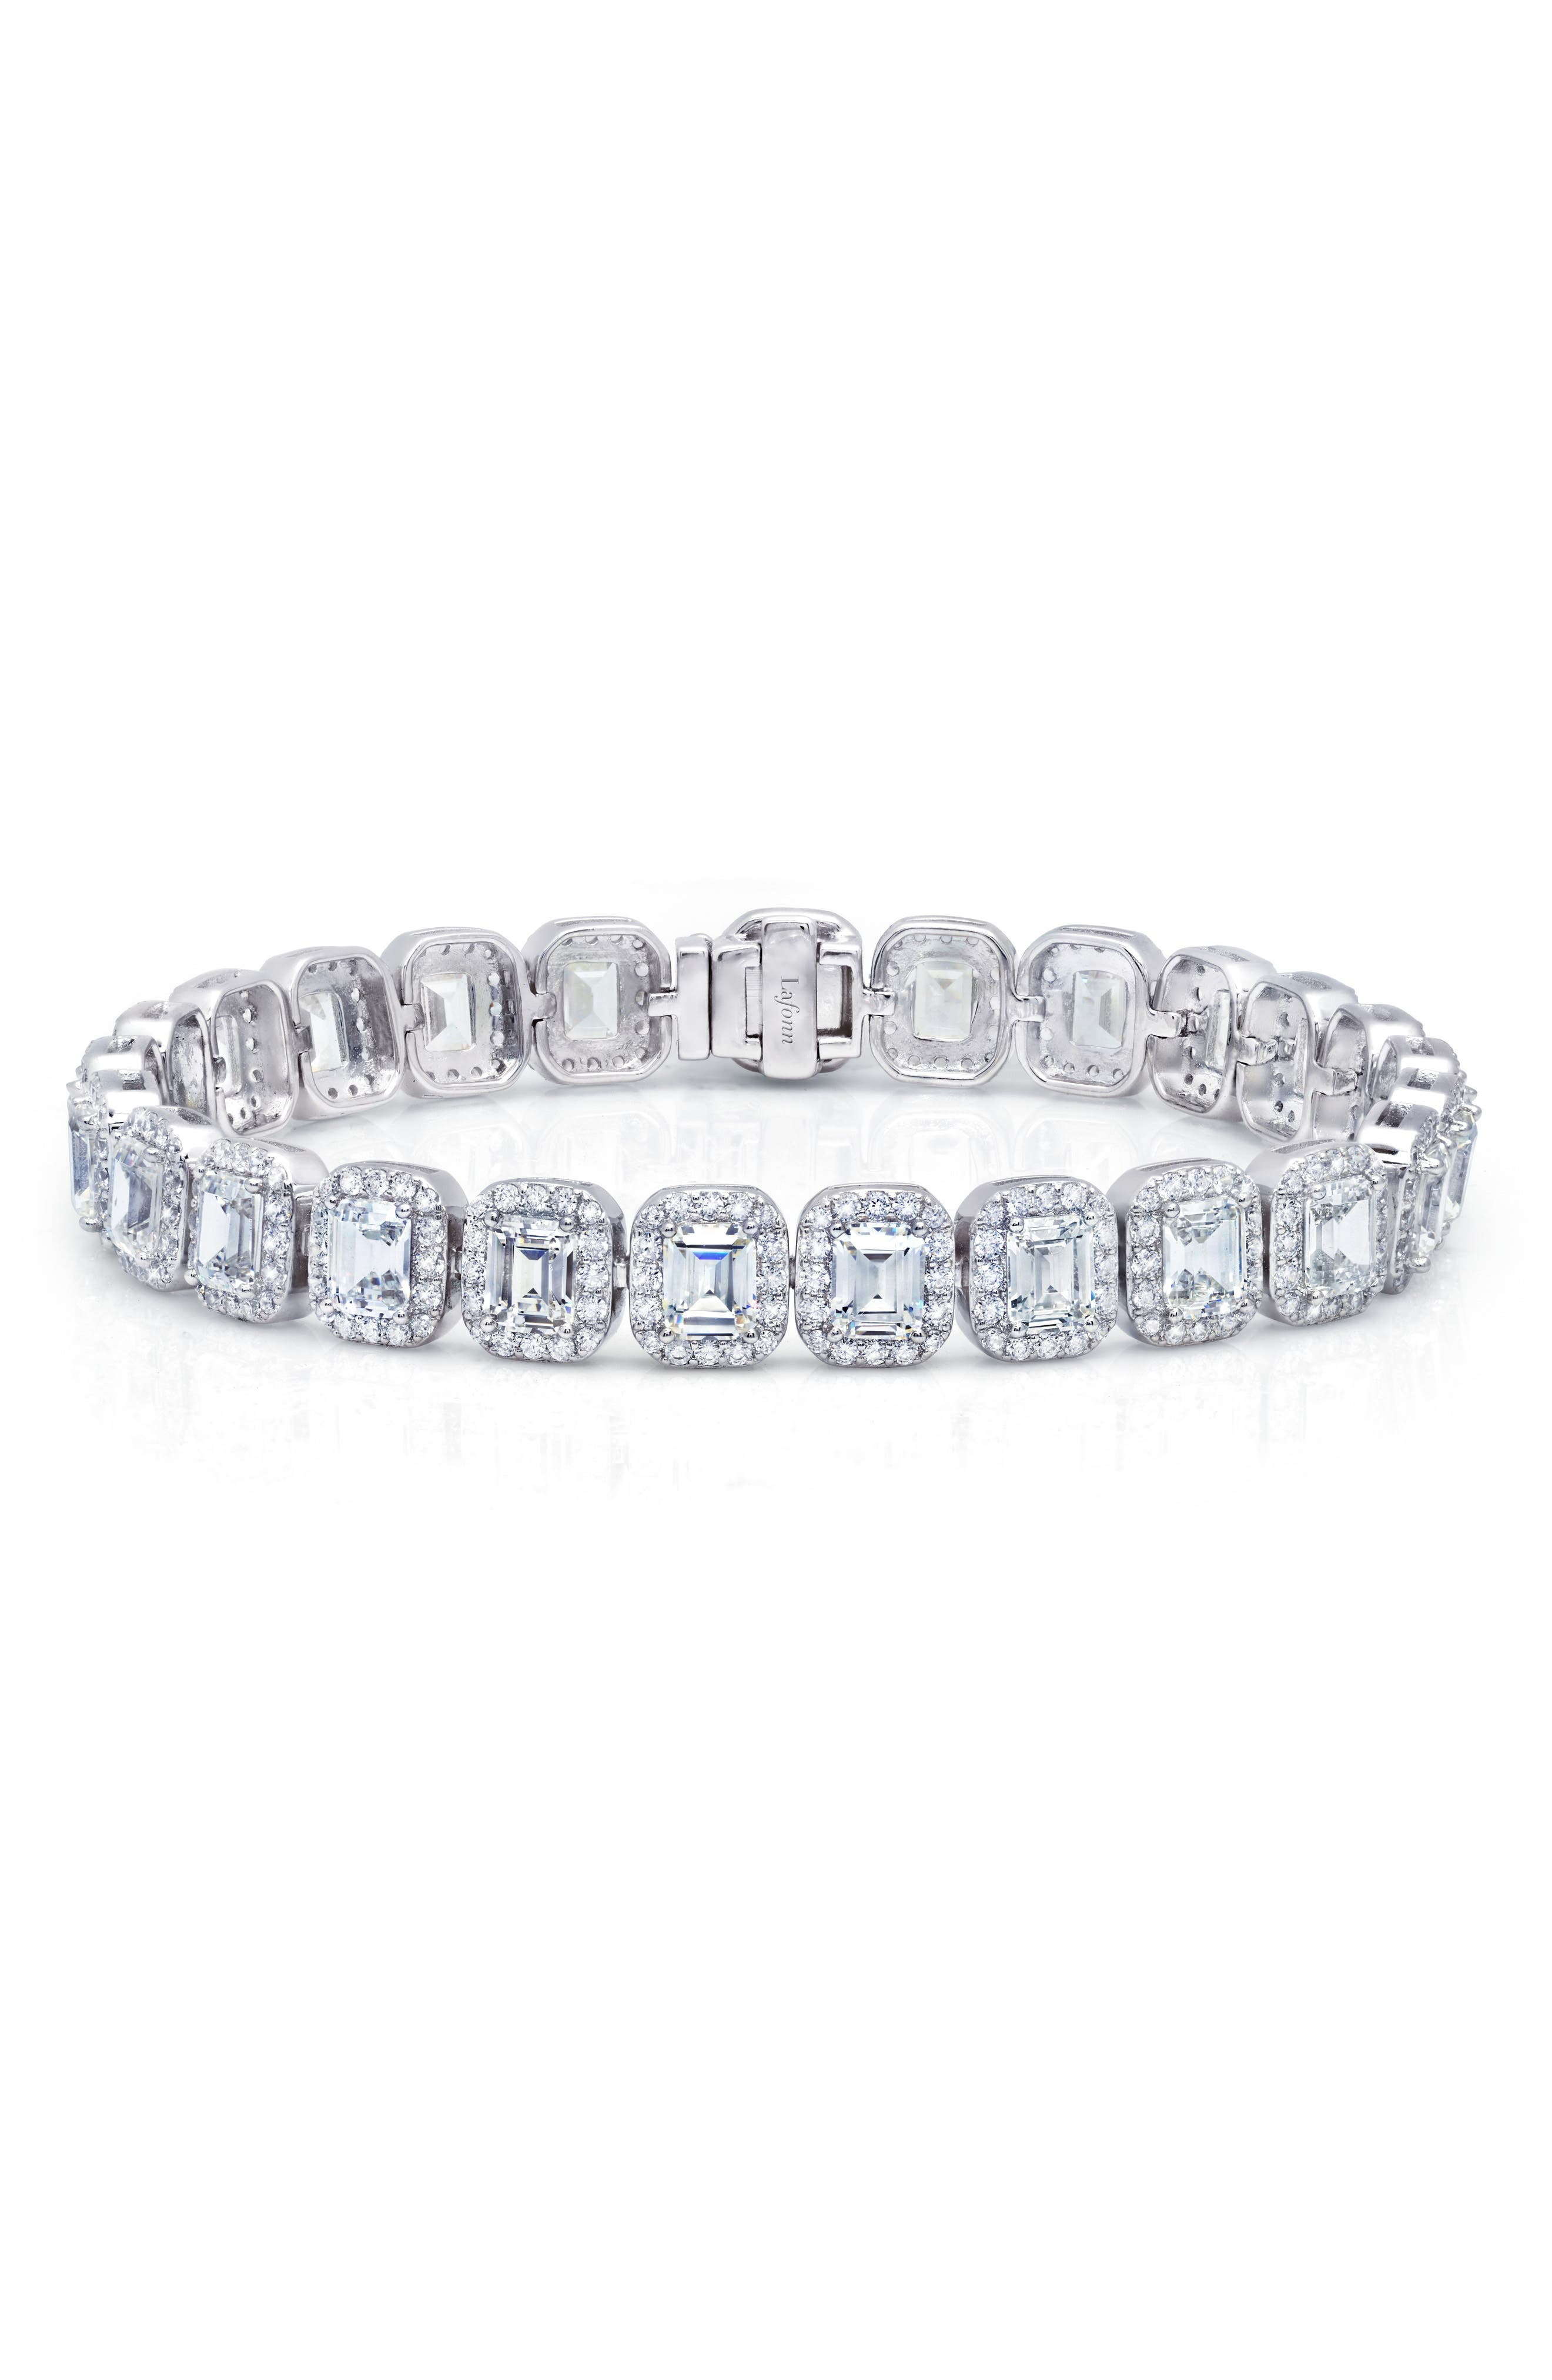 Lafonn Lassaire Emerald Cut Simulated Diamond Tennis Bracelet